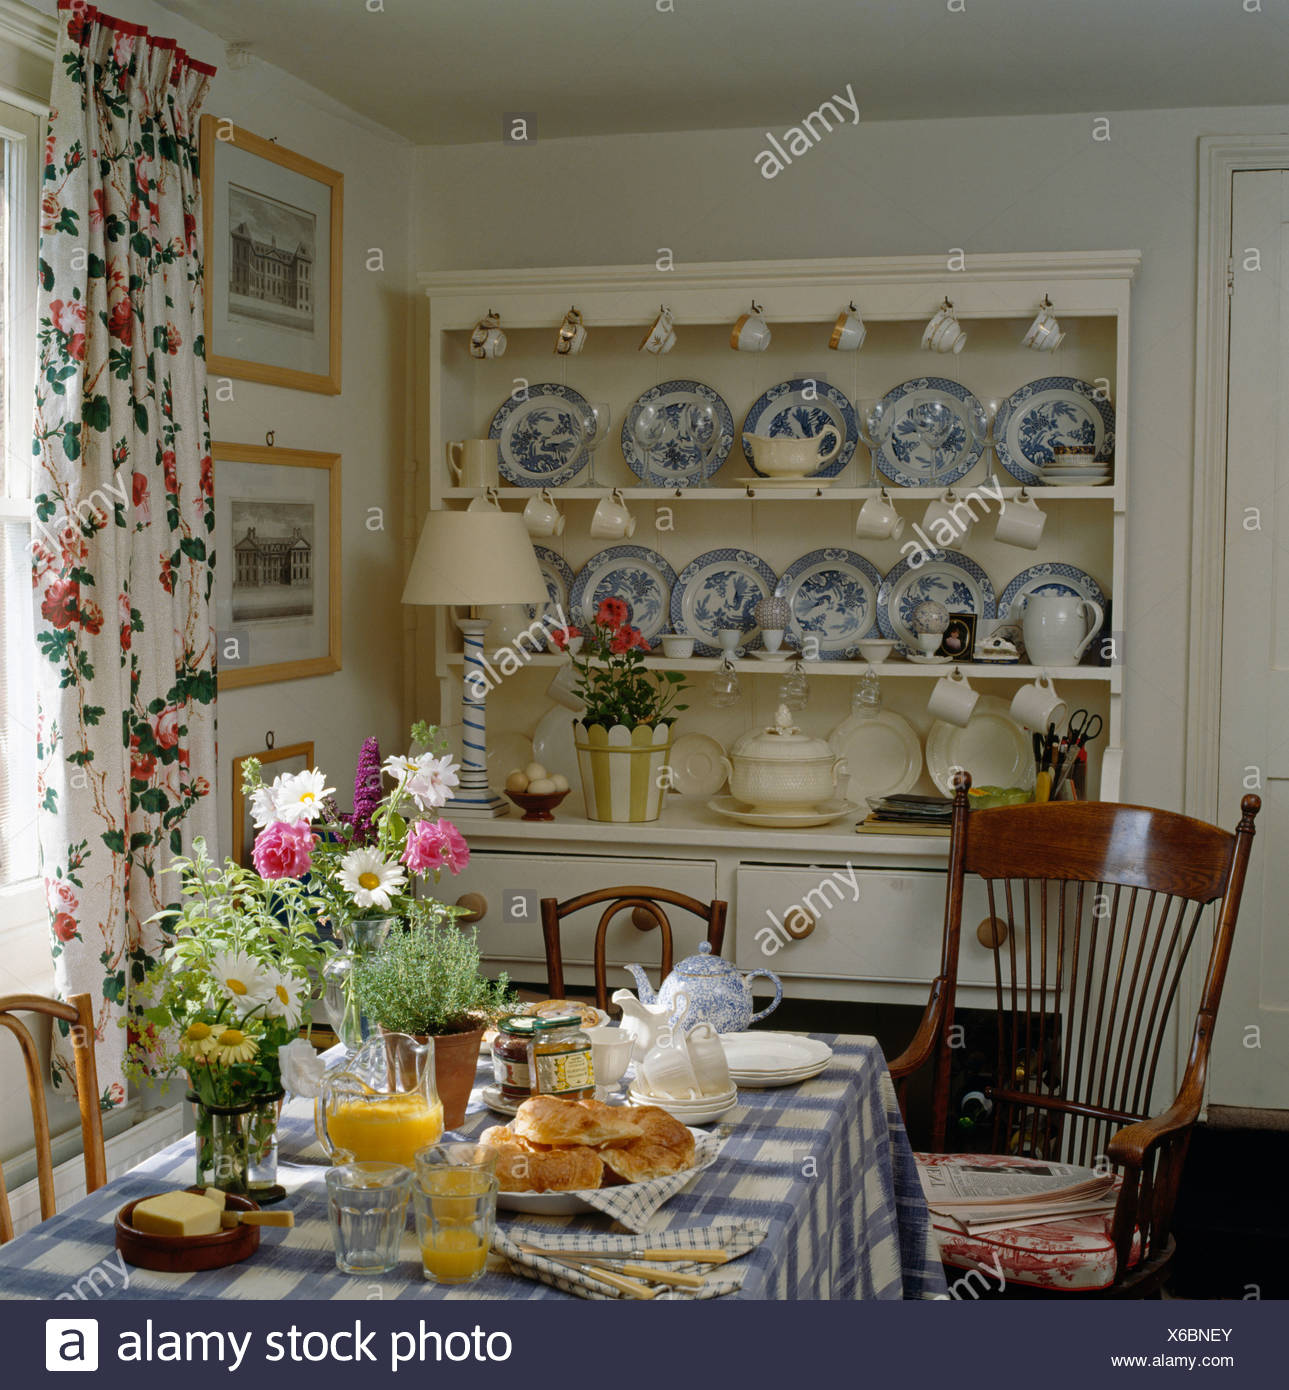 Blue White China Collection On Cream Dresser In Cottage Dining Room With Table Set For